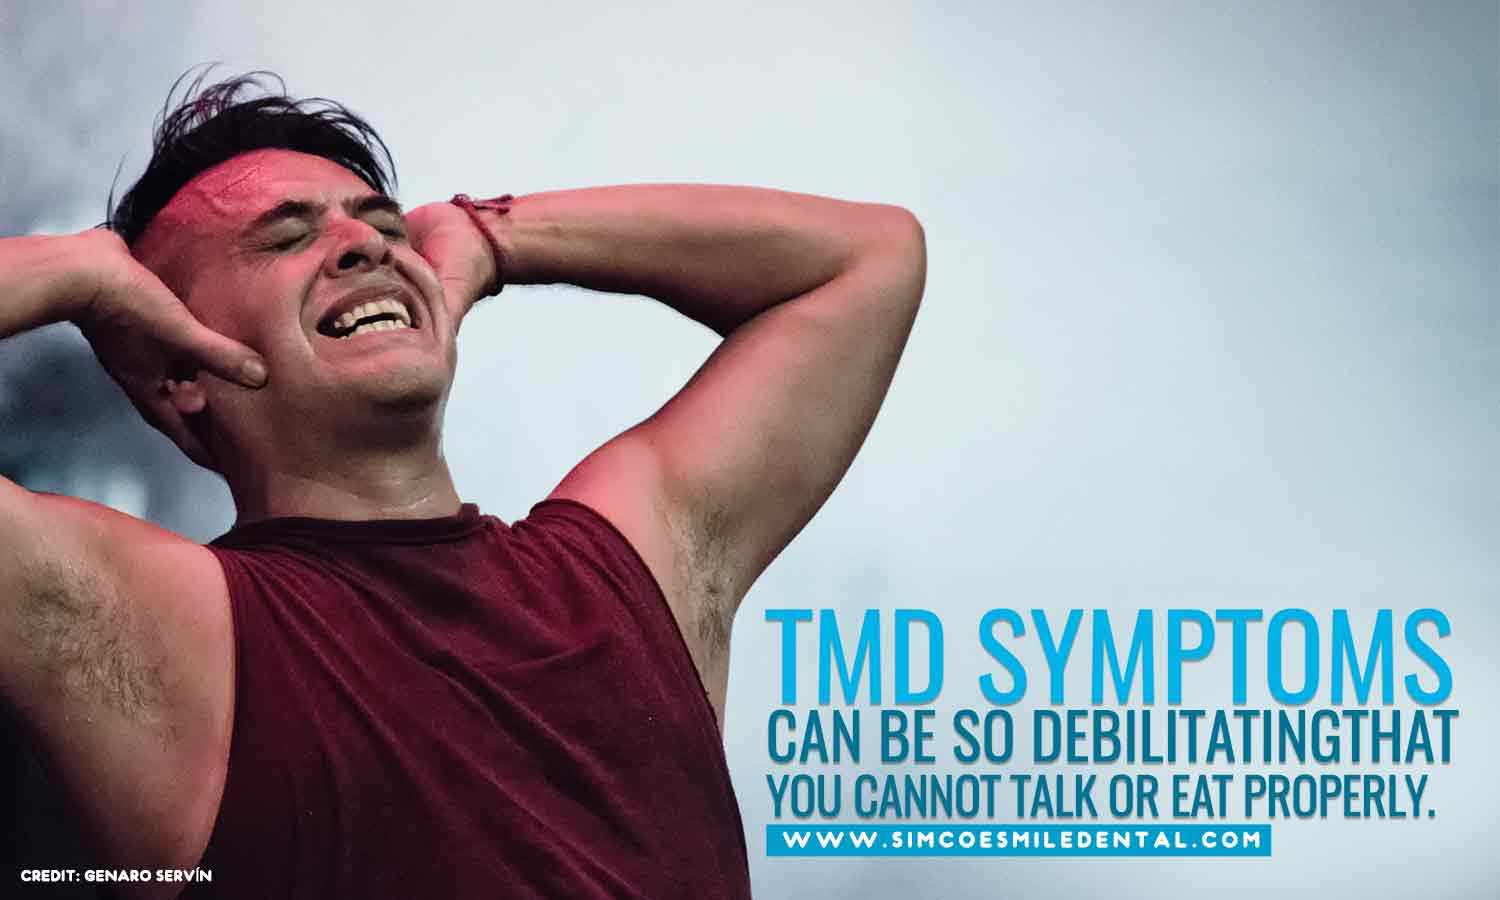 TMD-symptoms-can-be-so-debilitating-that-you-cannot-talk-or-eat-properly Dental Problems You Should Never Ignore